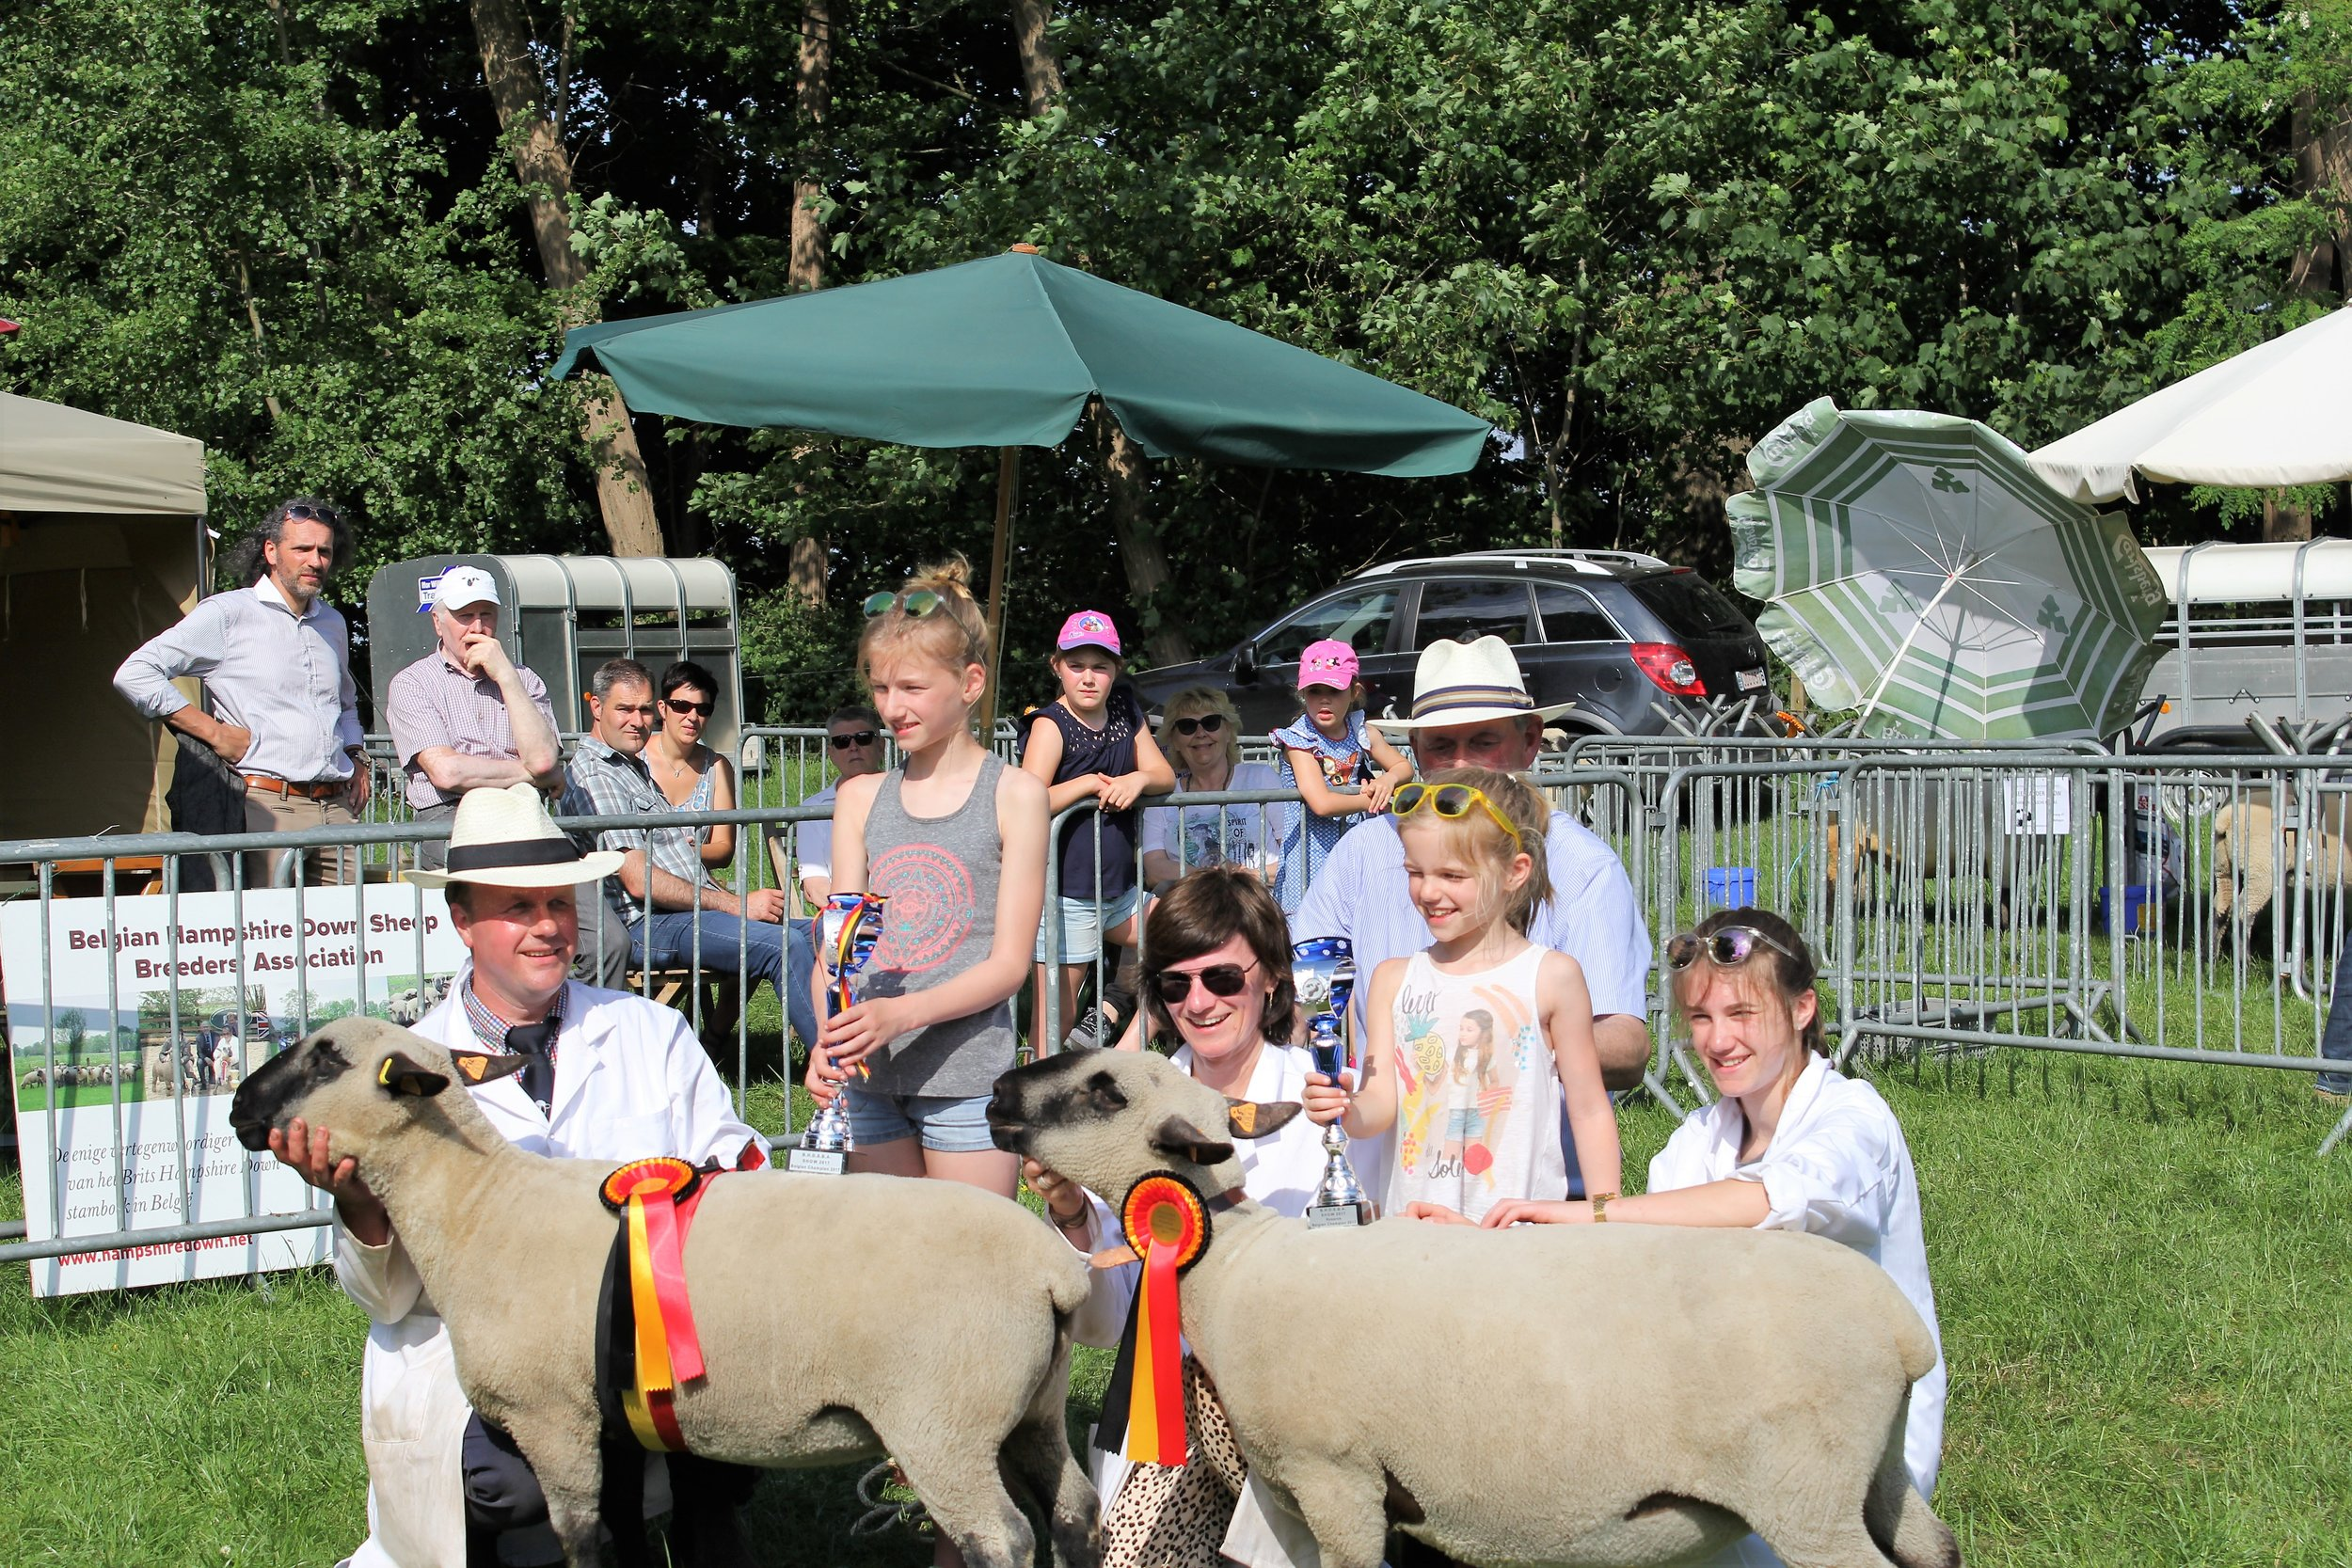 The Champion & Reserve Champion team from Limetree Flock, Klaus & Philomene Soenen and daughters